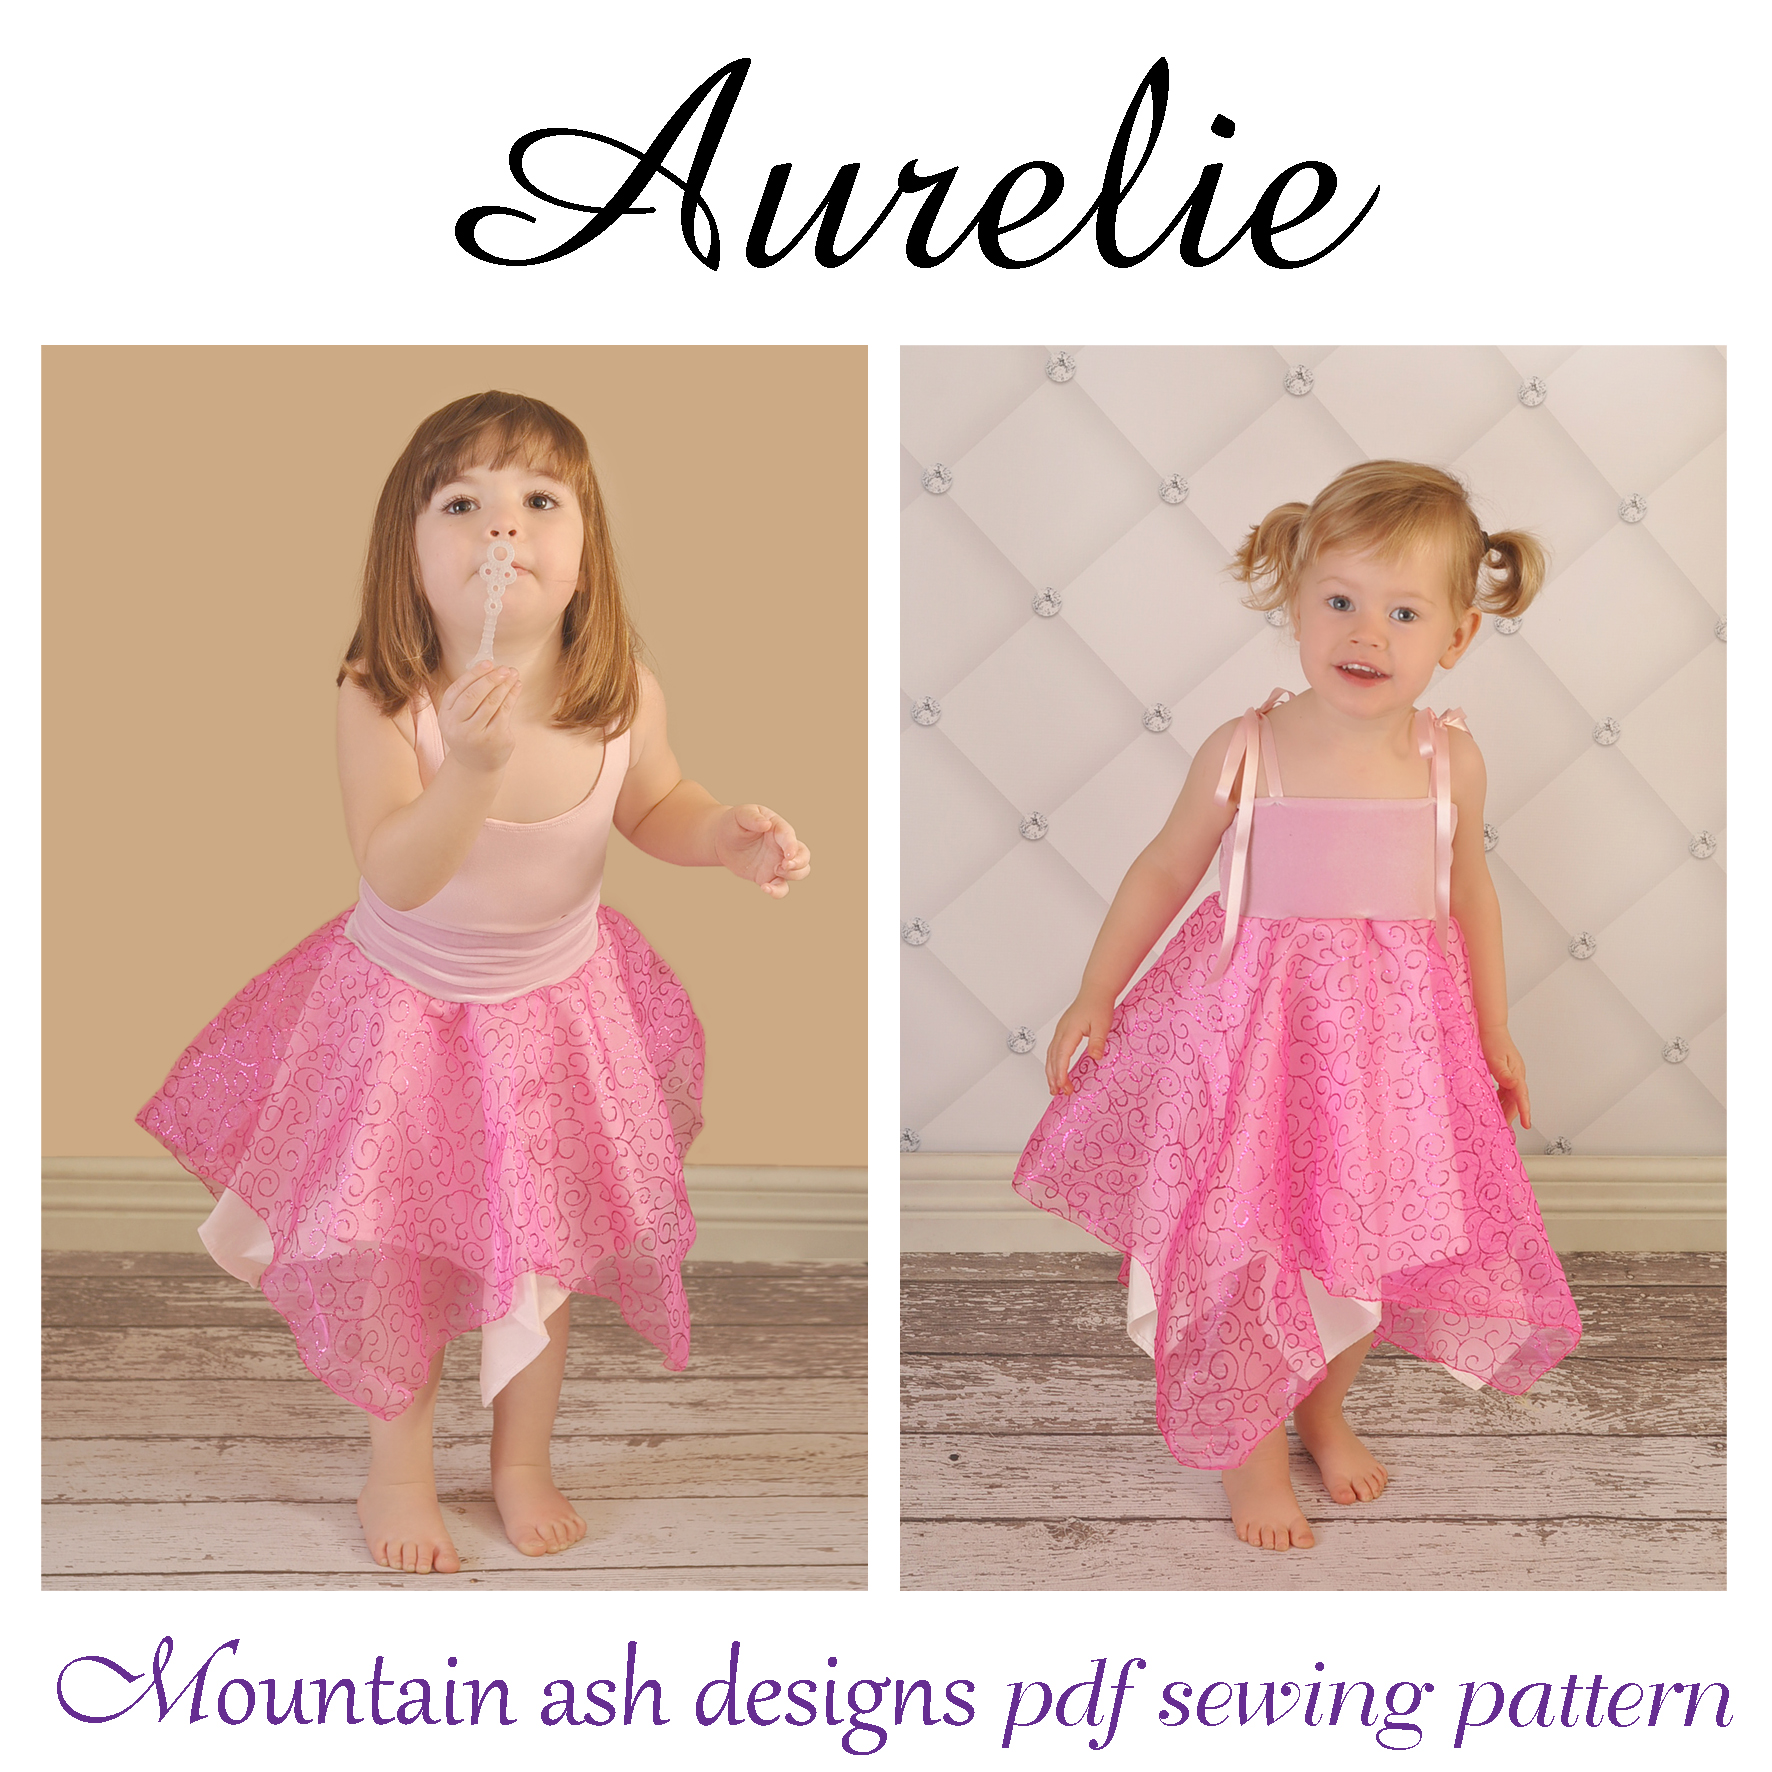 Aurelie Fairy Dress Sewing Pattern in Girls Sizes 1-10